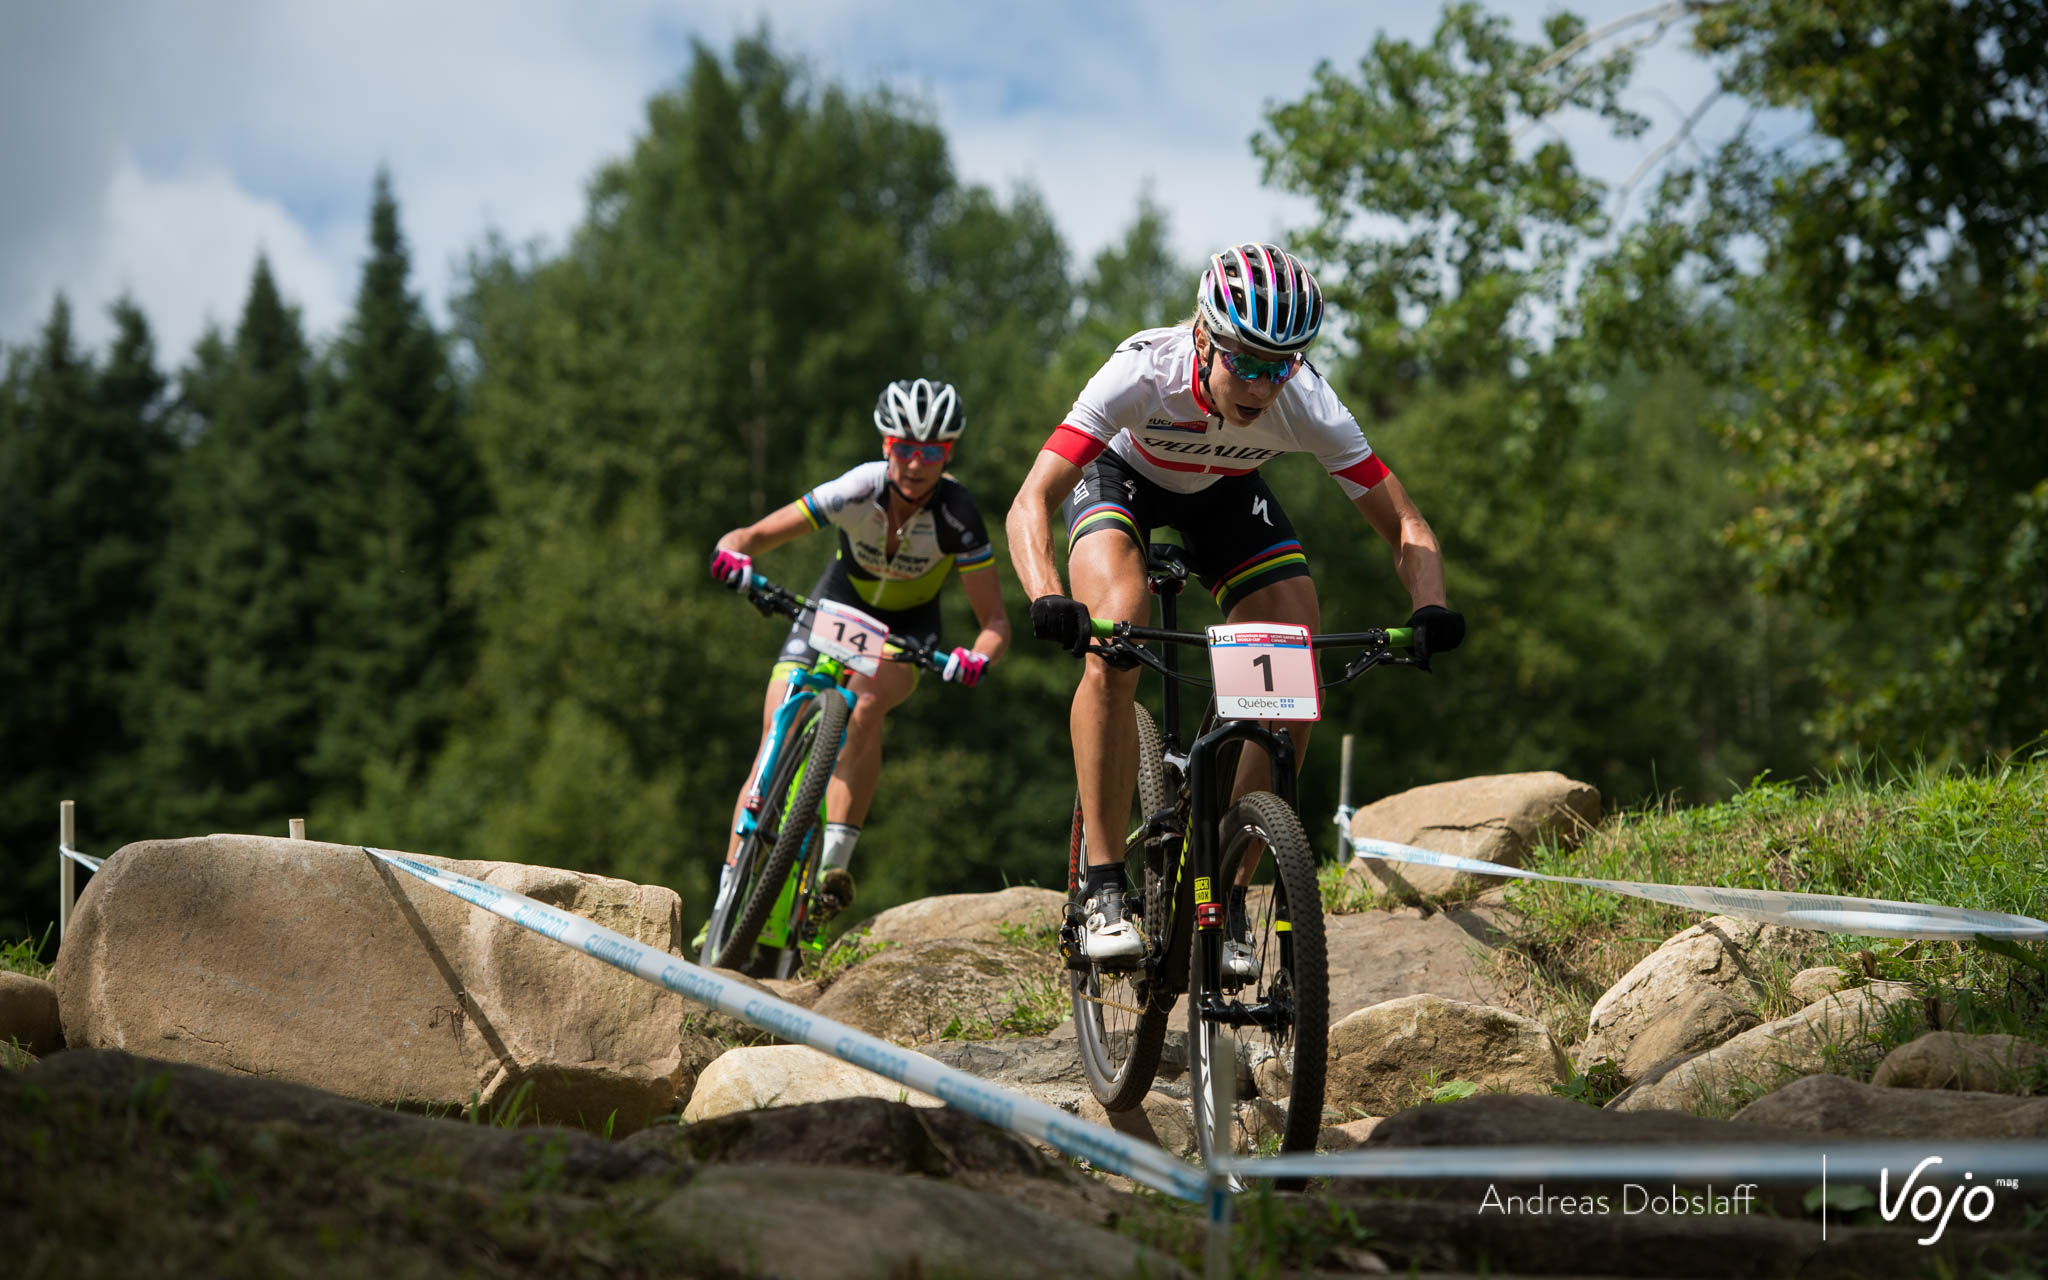 1, Langvad, Annika, Specialized Racing XC, , DEN